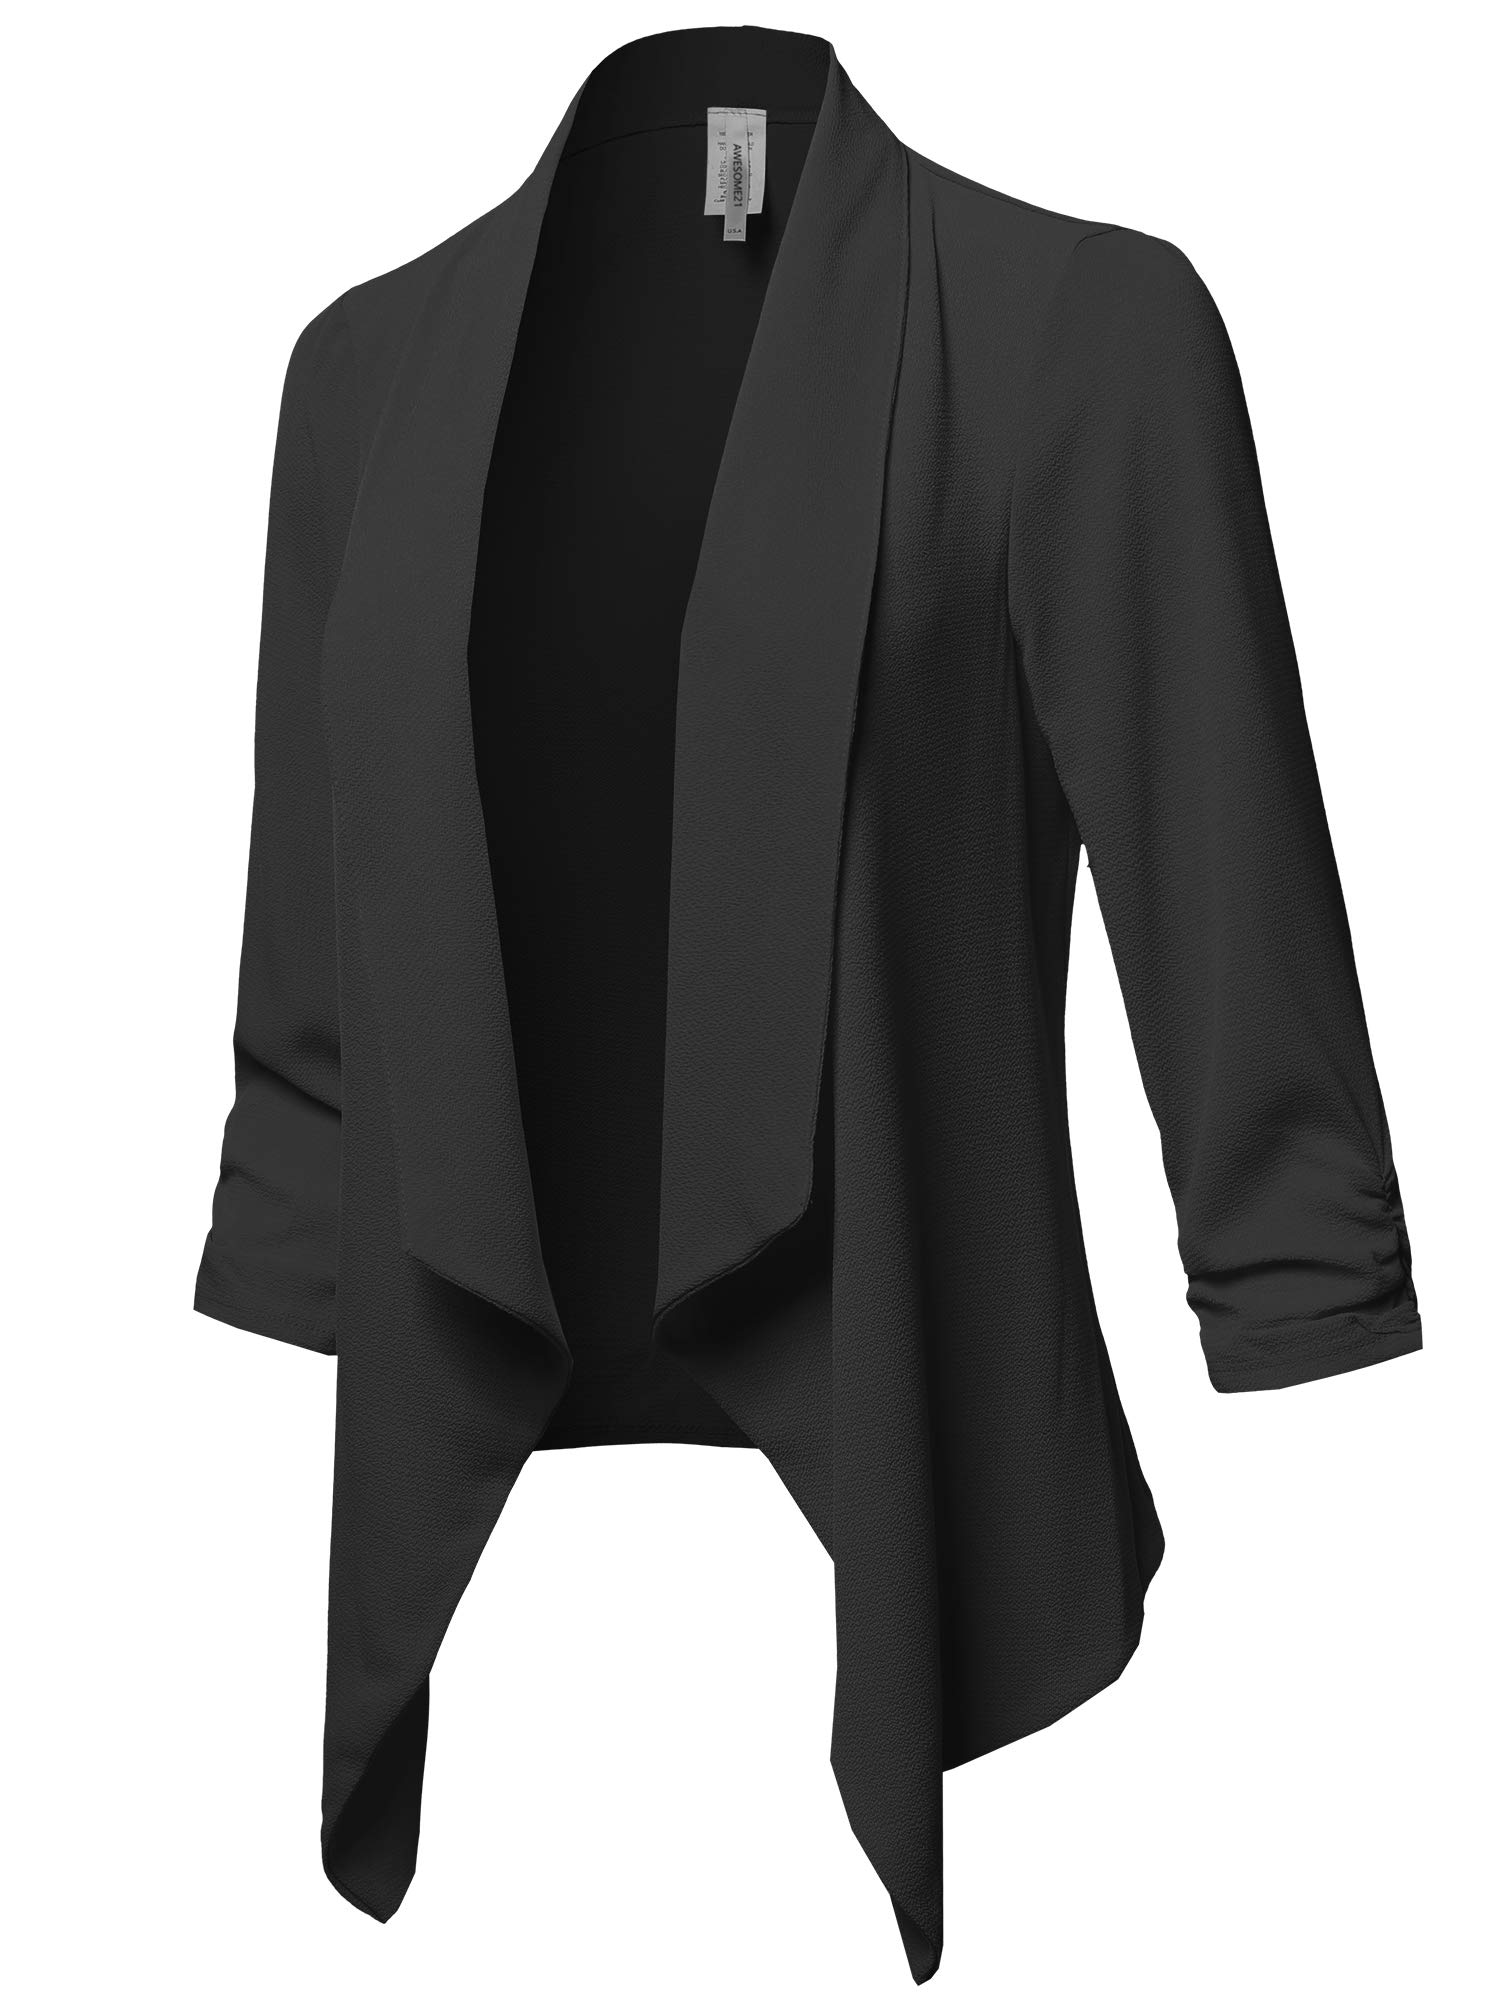 Awesome21 Solid Lightweight 3/4 Ruched Sleeves Thin Cardigan Blazer Black S